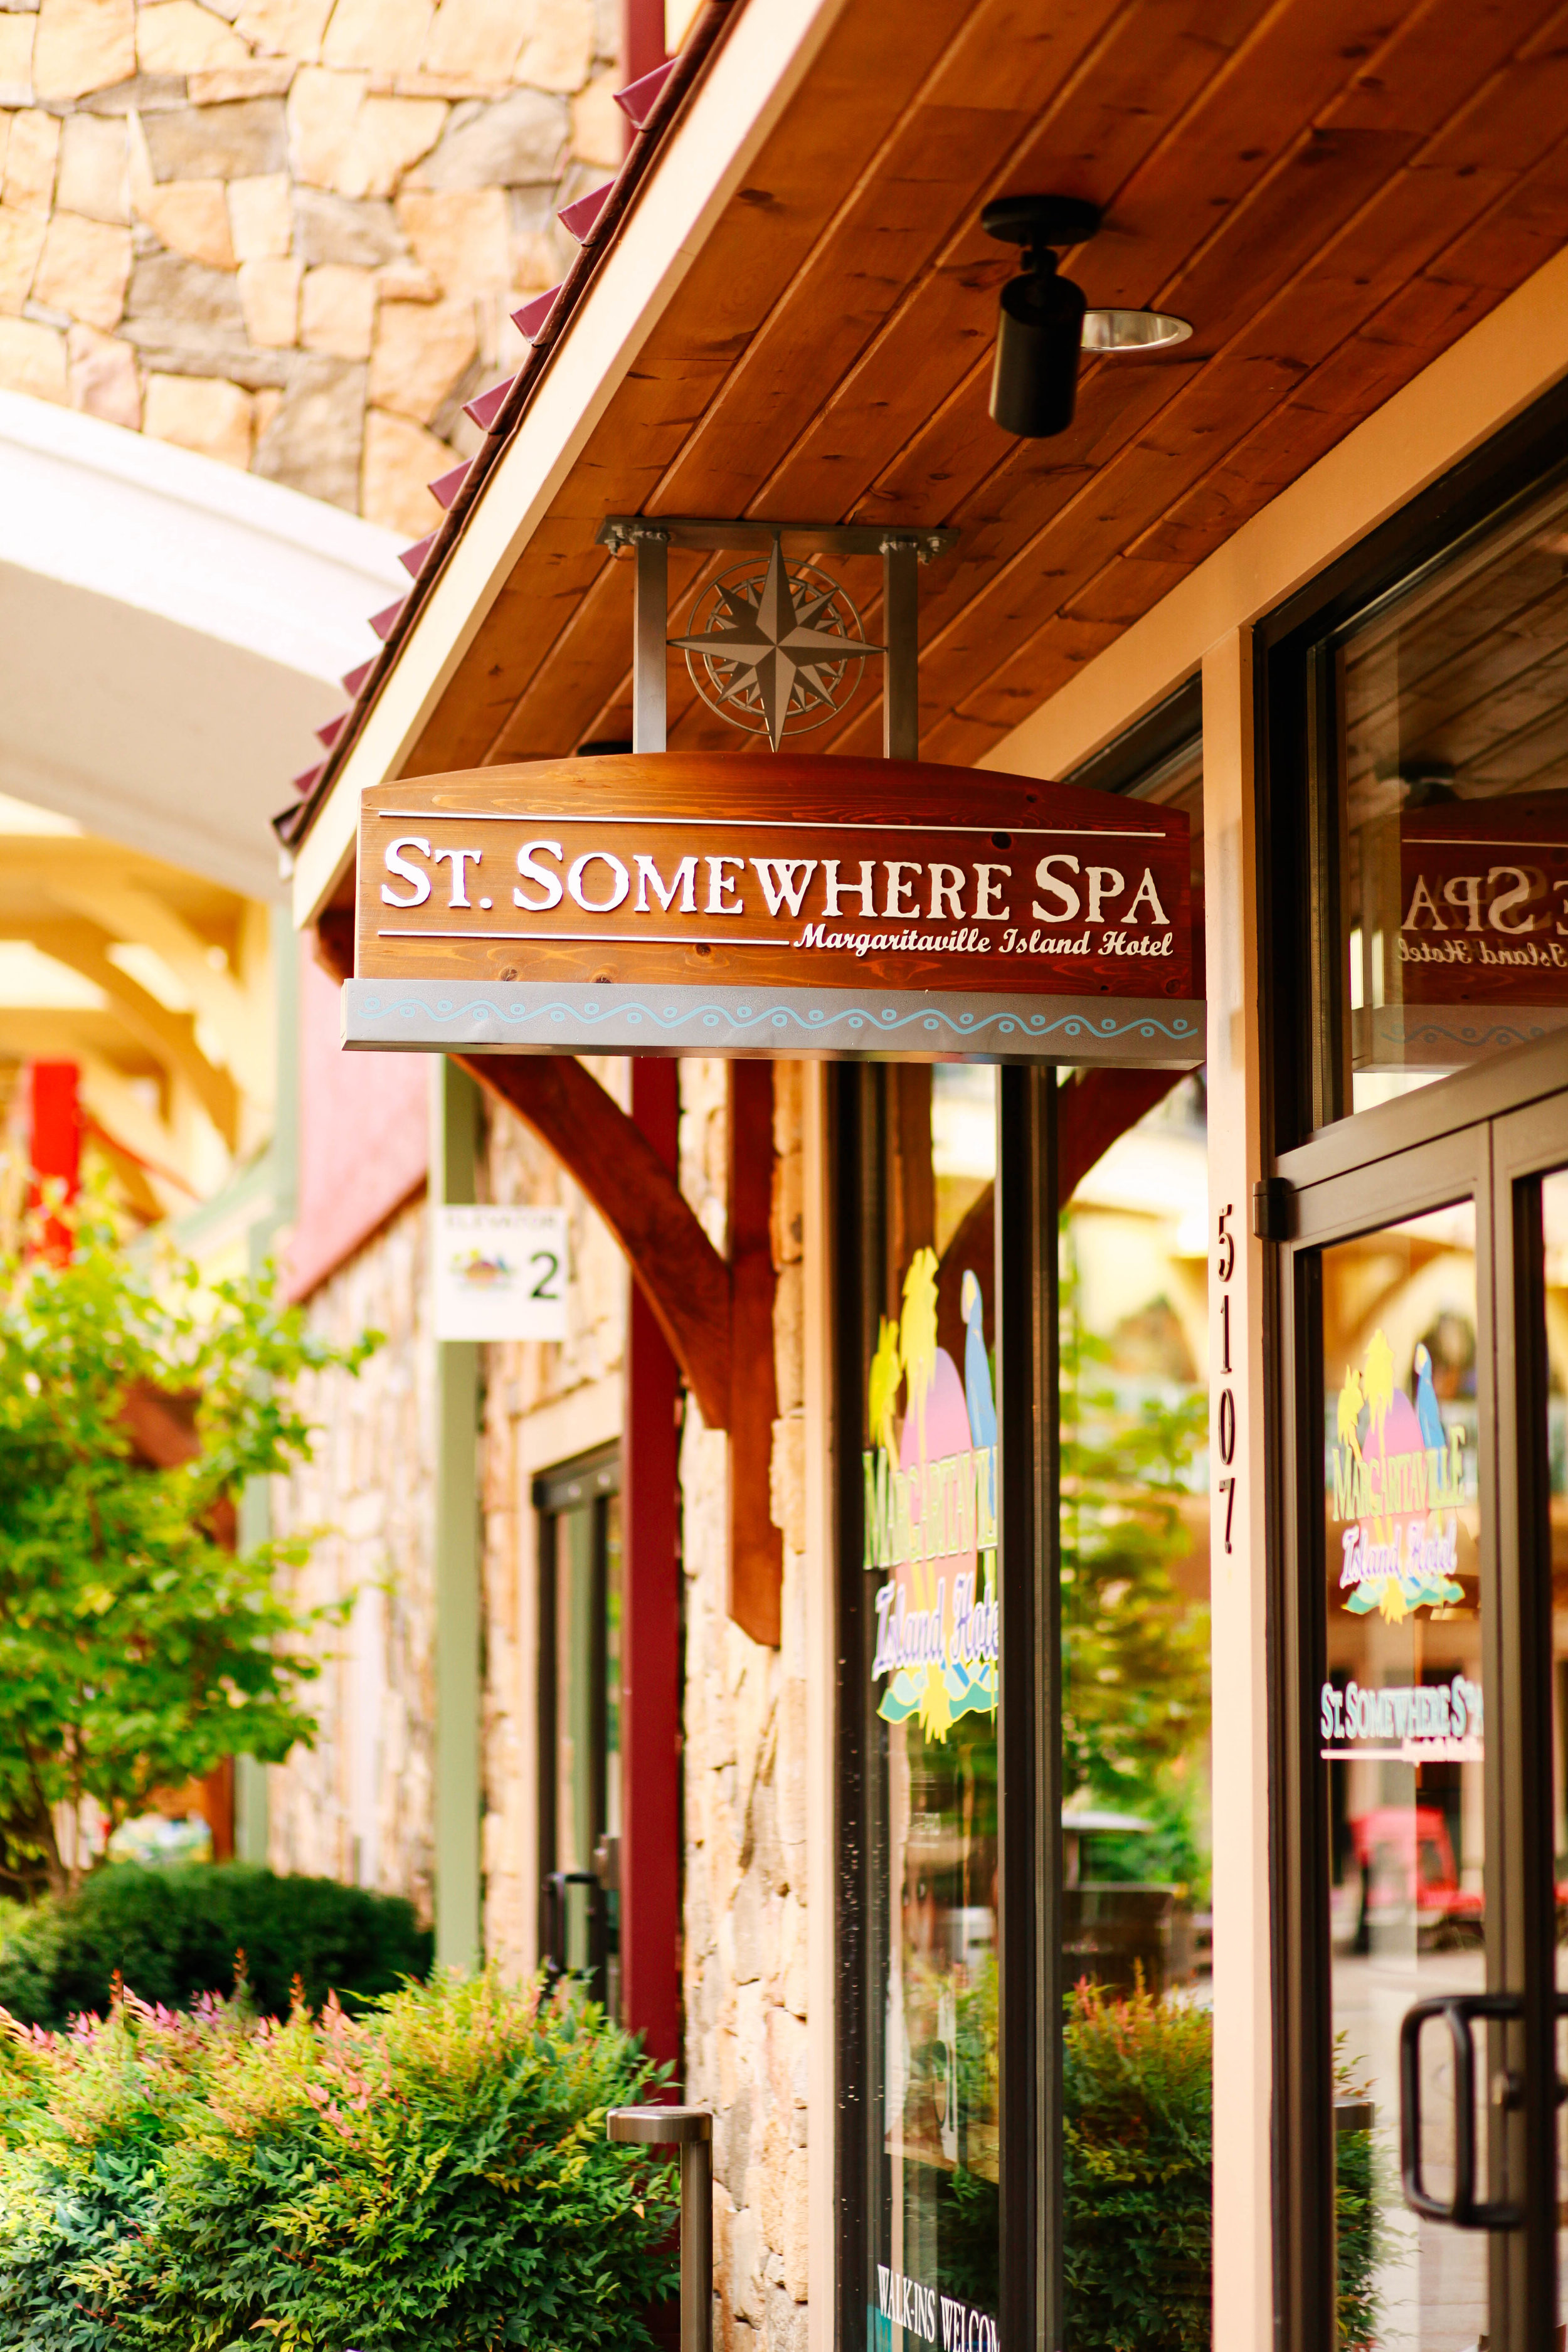 Beauty Favorites in Pigeon Forge, Tennessee ↠ St. Somewhere Spa Margaritaville Island Hotel   3 things to know before getting a lash lift!